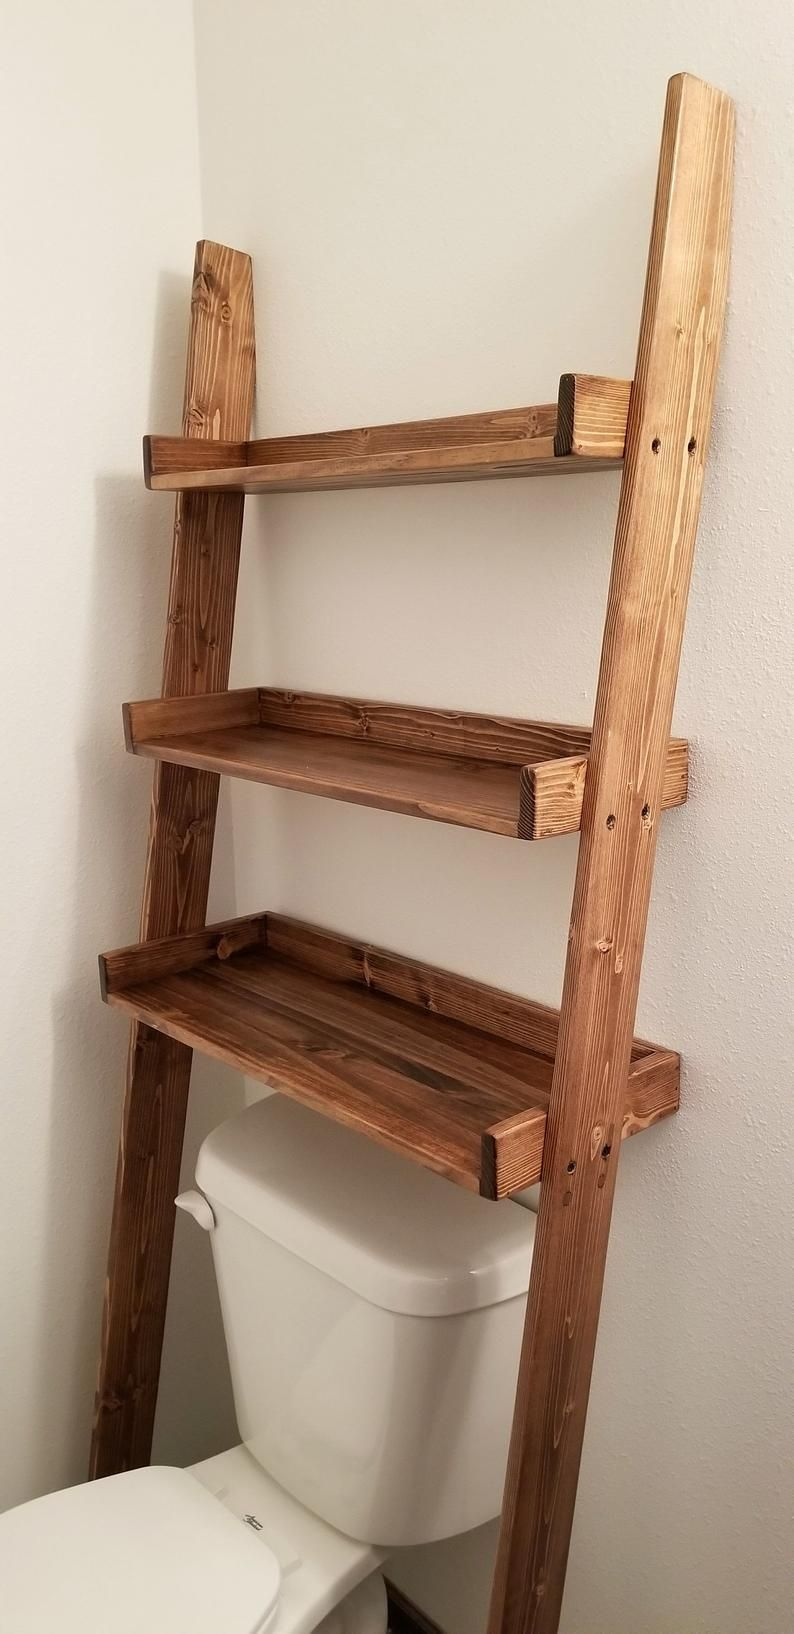 Over The Toilet Ladder Shelf Over The Toilet Storage Bathroom Storage Bathroom Shelving Bathroo In 2020 Toilet Storage Over The Toilet Ladder Over Toilet Storage